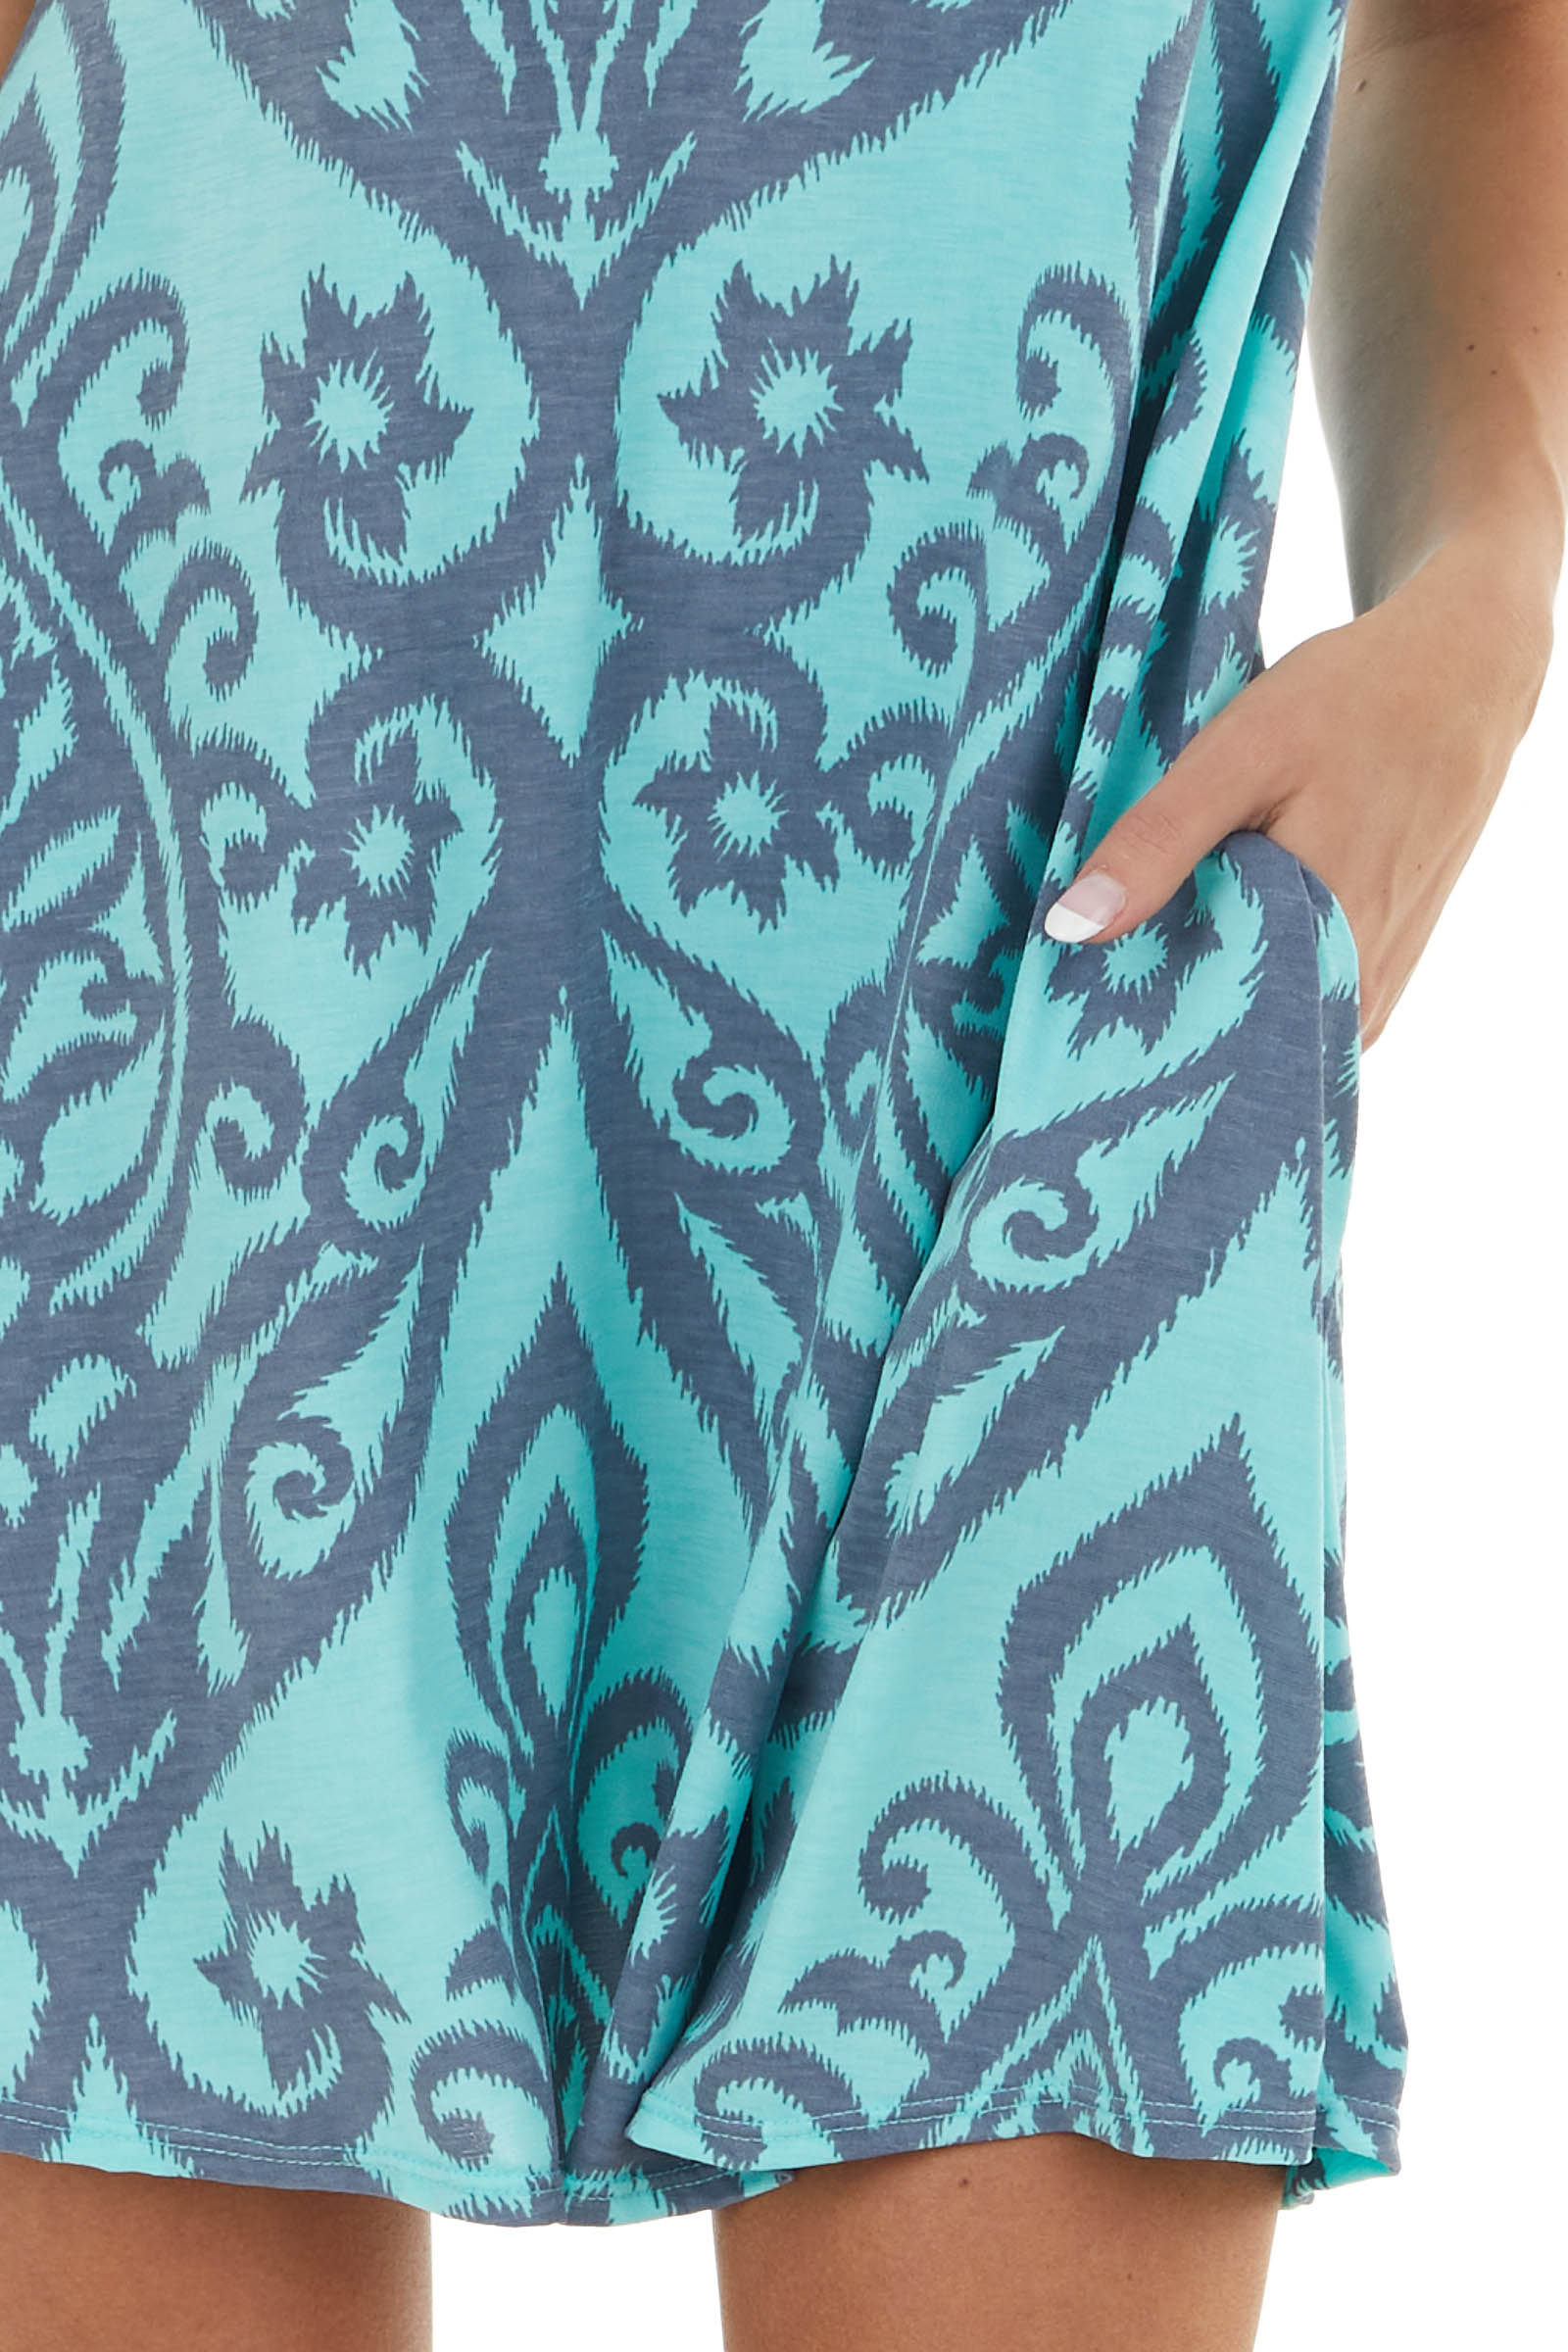 Mint Printed Short Sleeve Short Dress with Pockets